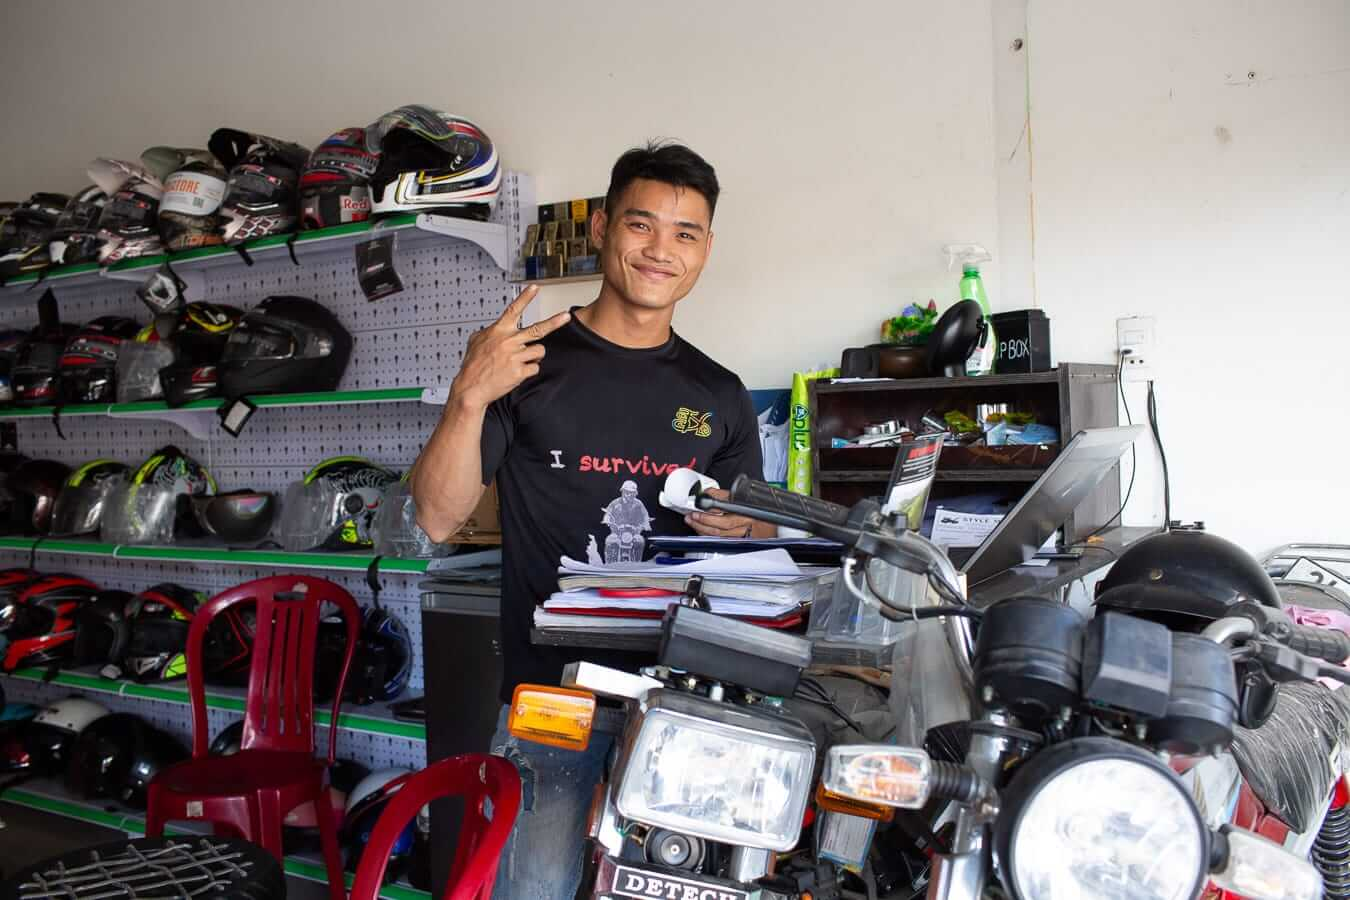 Style Motorbikes' desk: Motorbike Rental Shops in Hoi An